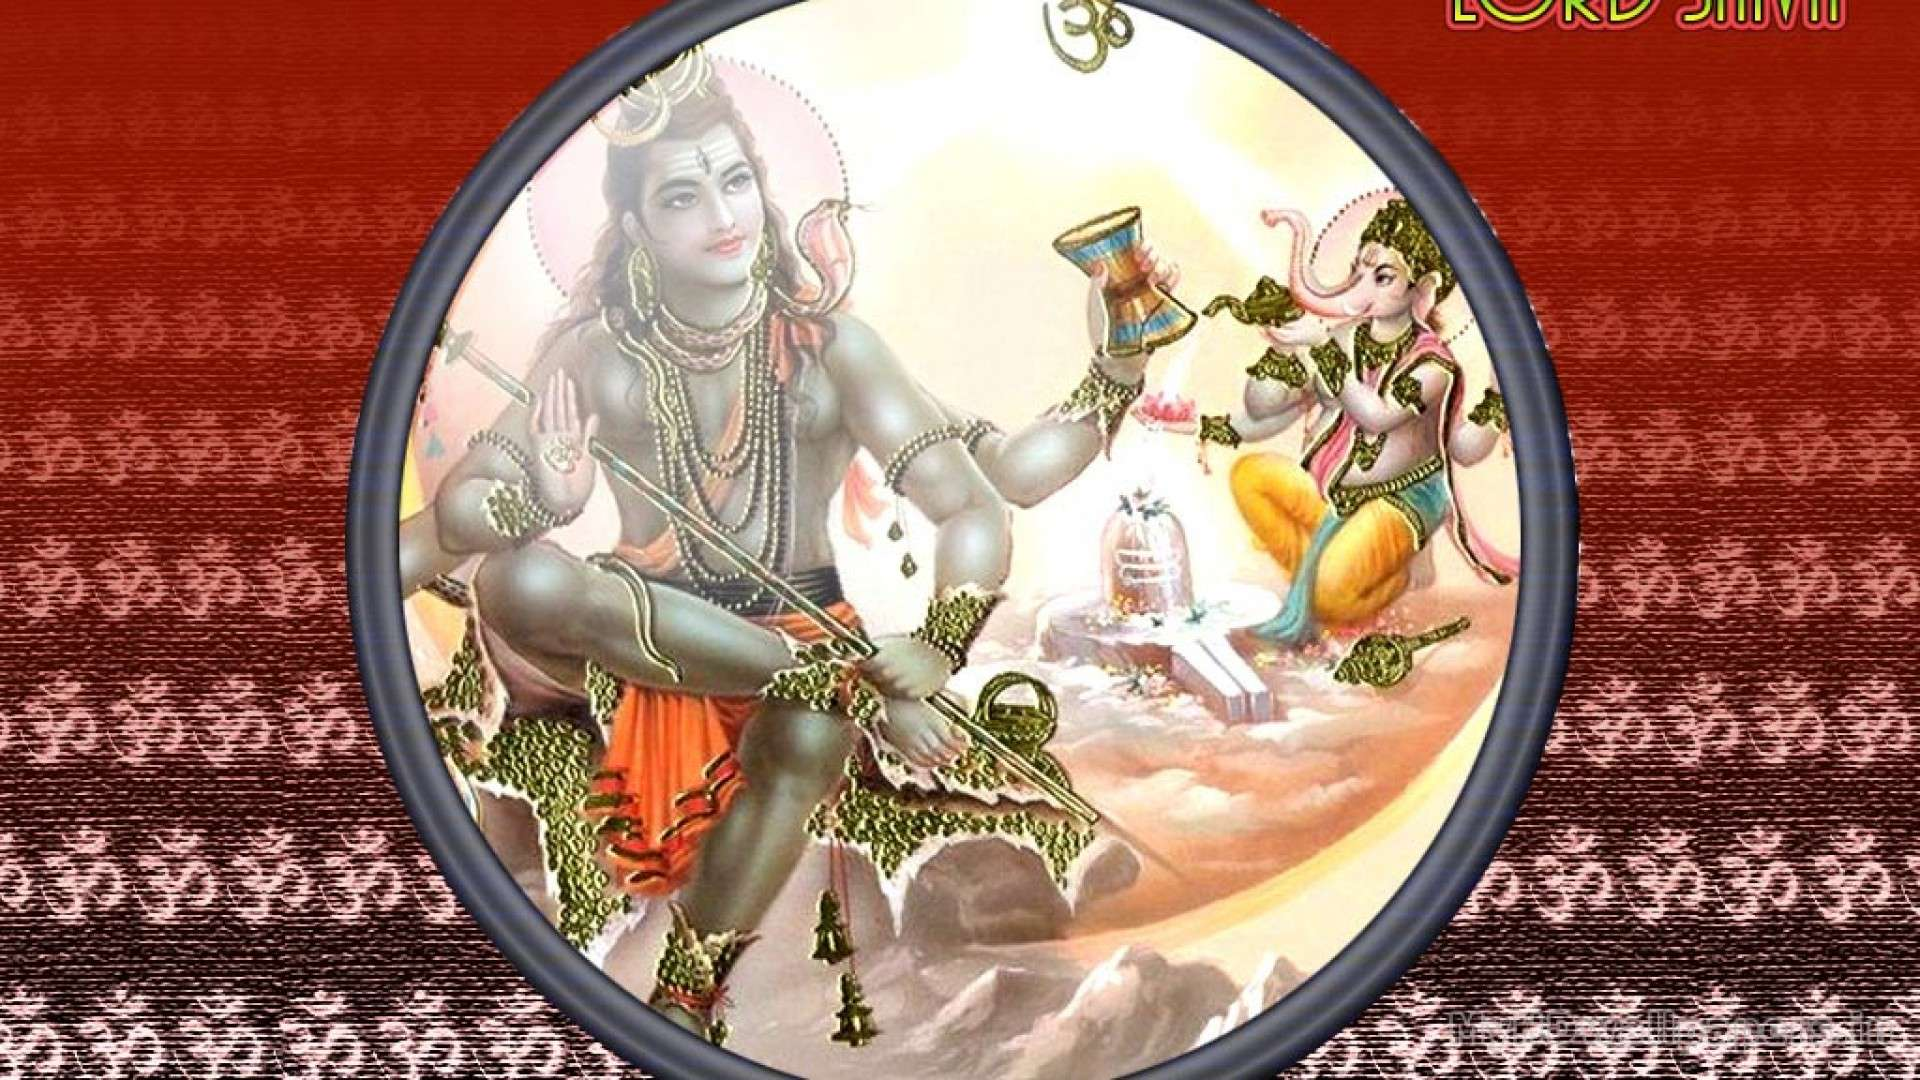 Lord Shiva Wallpapers High Resolution: Lord Shiva Parvati Wallpapers High Resolution : Hd Wallpapers